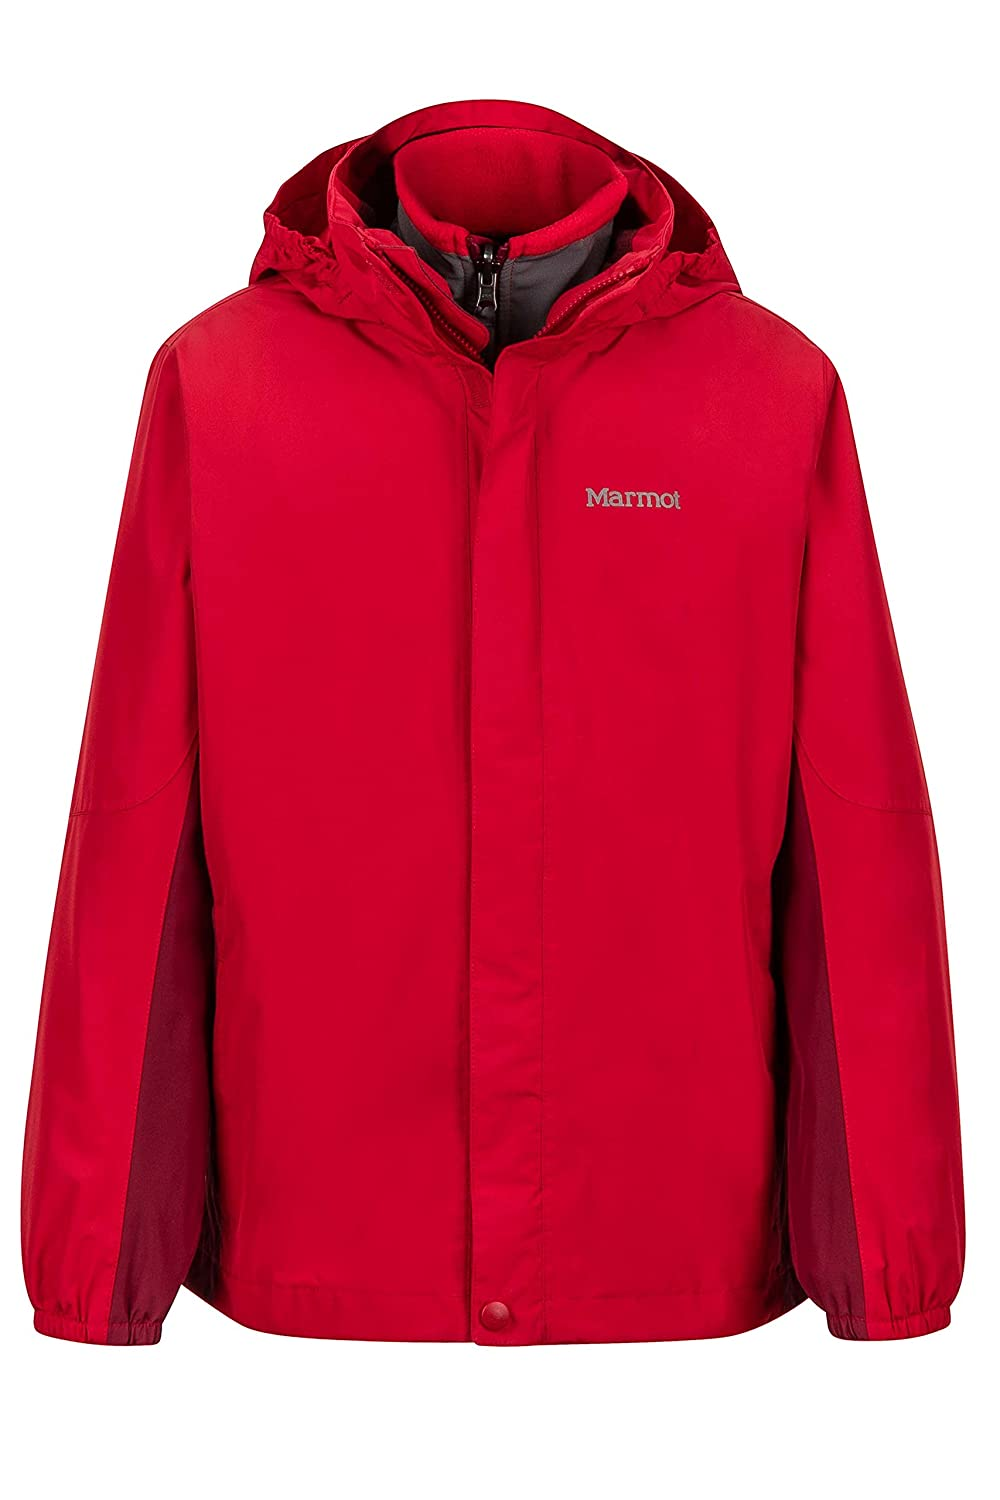 Marmot Northshore Boys' Waterproof Hooded Rain Jacket with Removable Fleece Liner